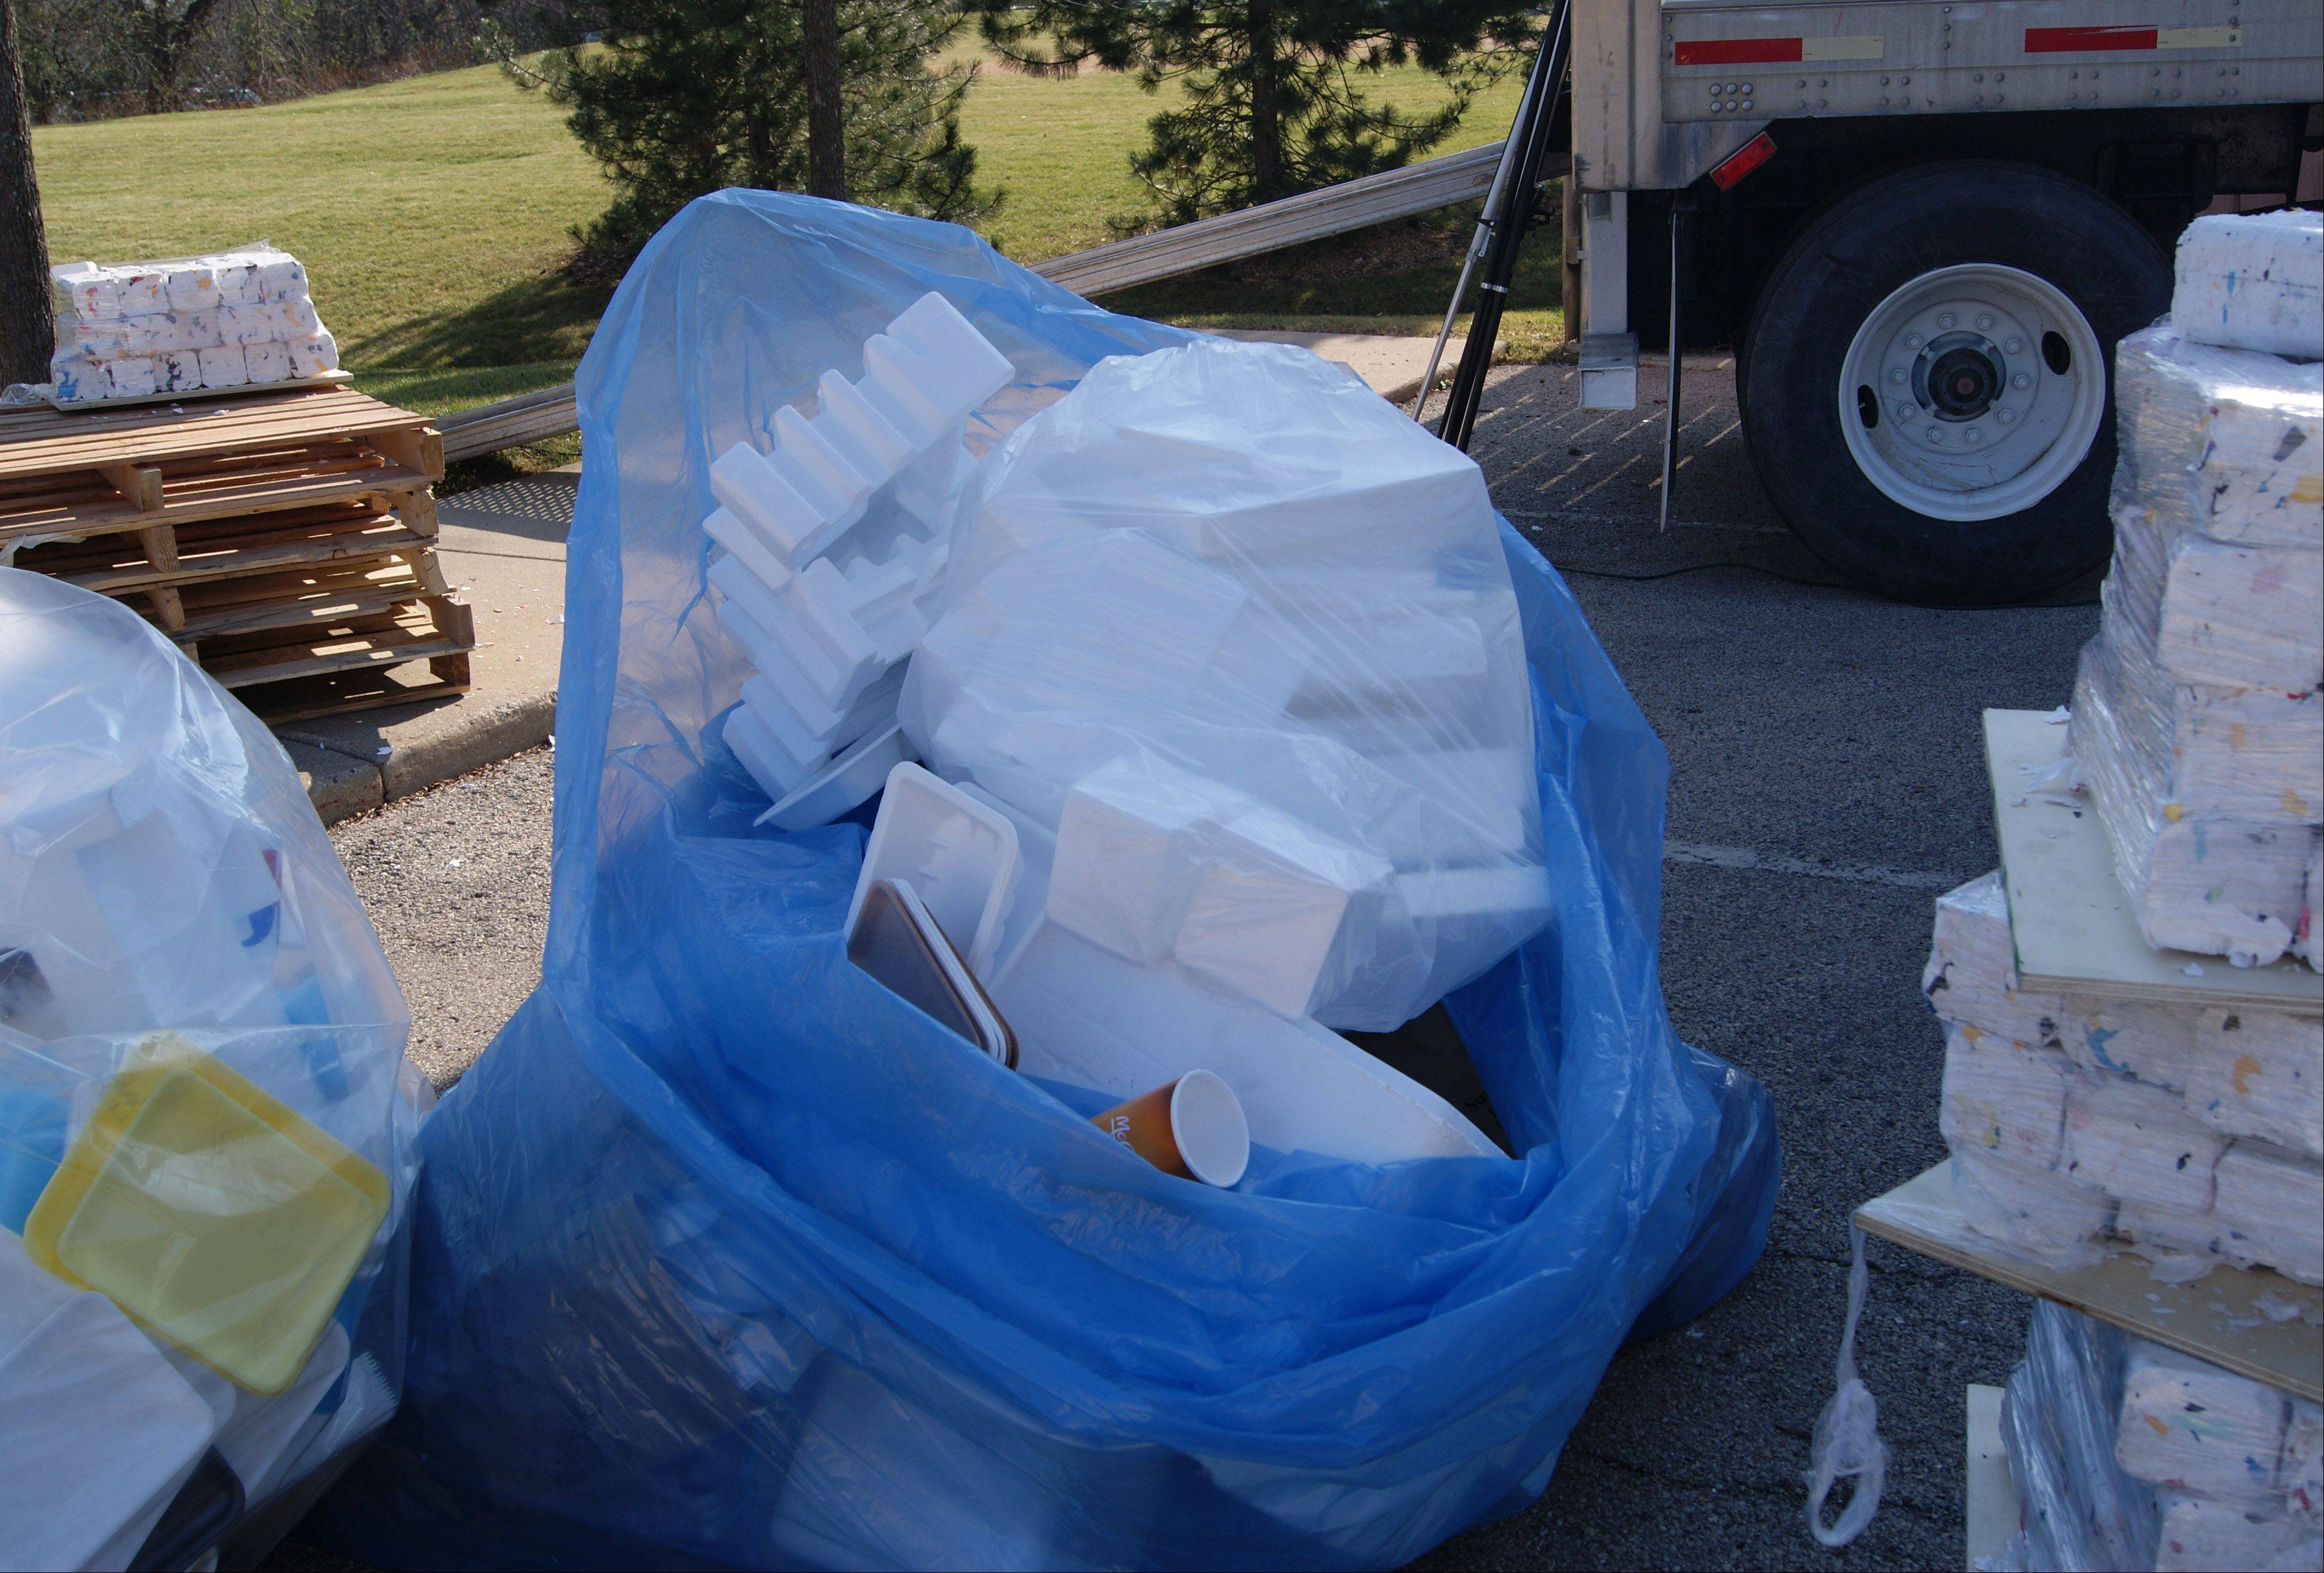 Foam items collected through Highland Park's recycling program.